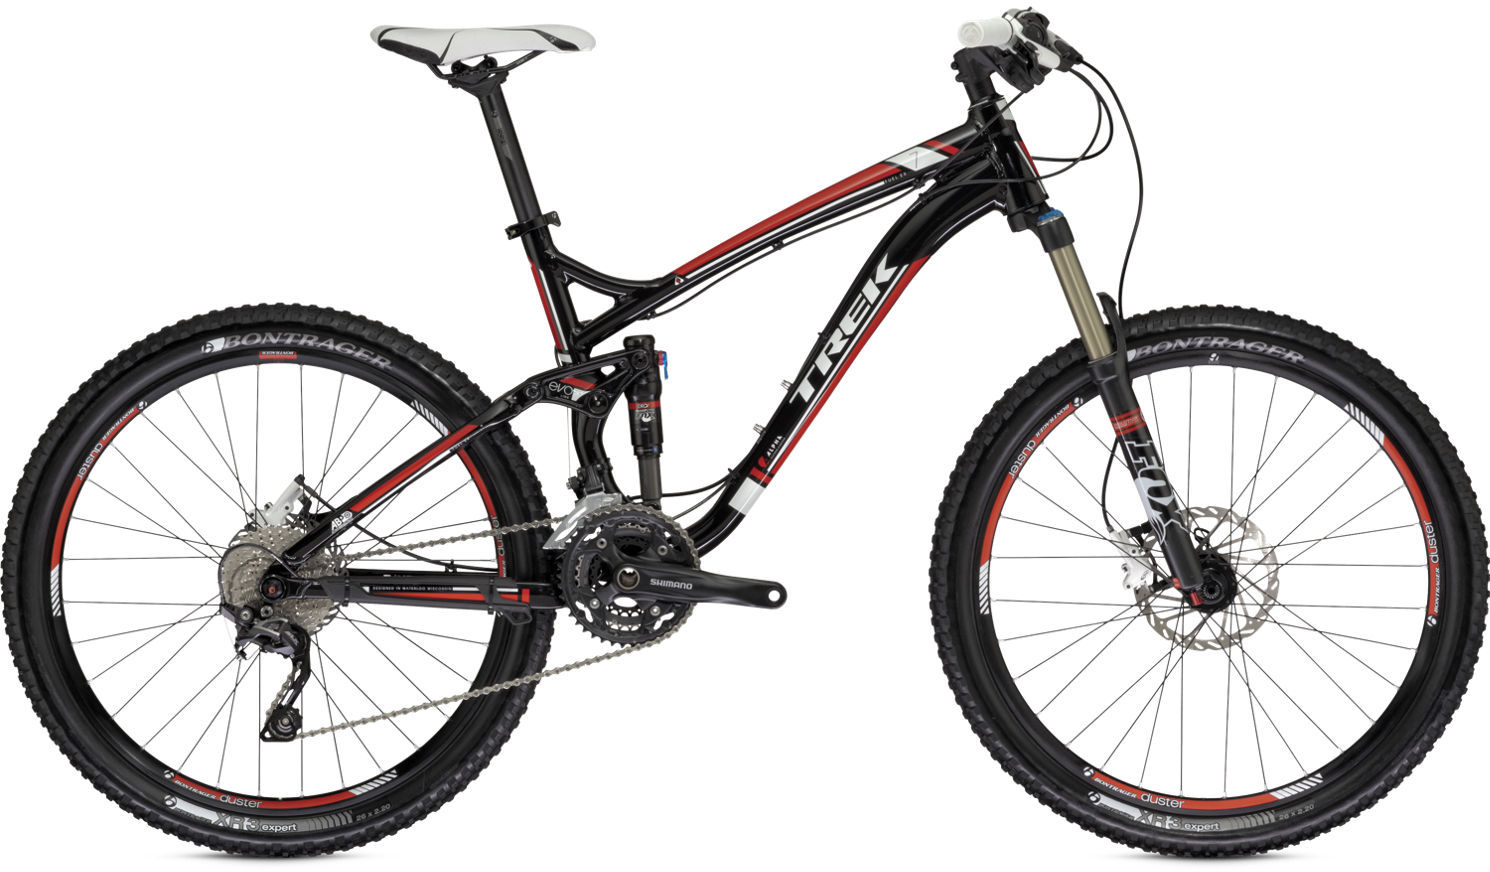 Trek Fuel Ex 7 2013 Review The Bike List